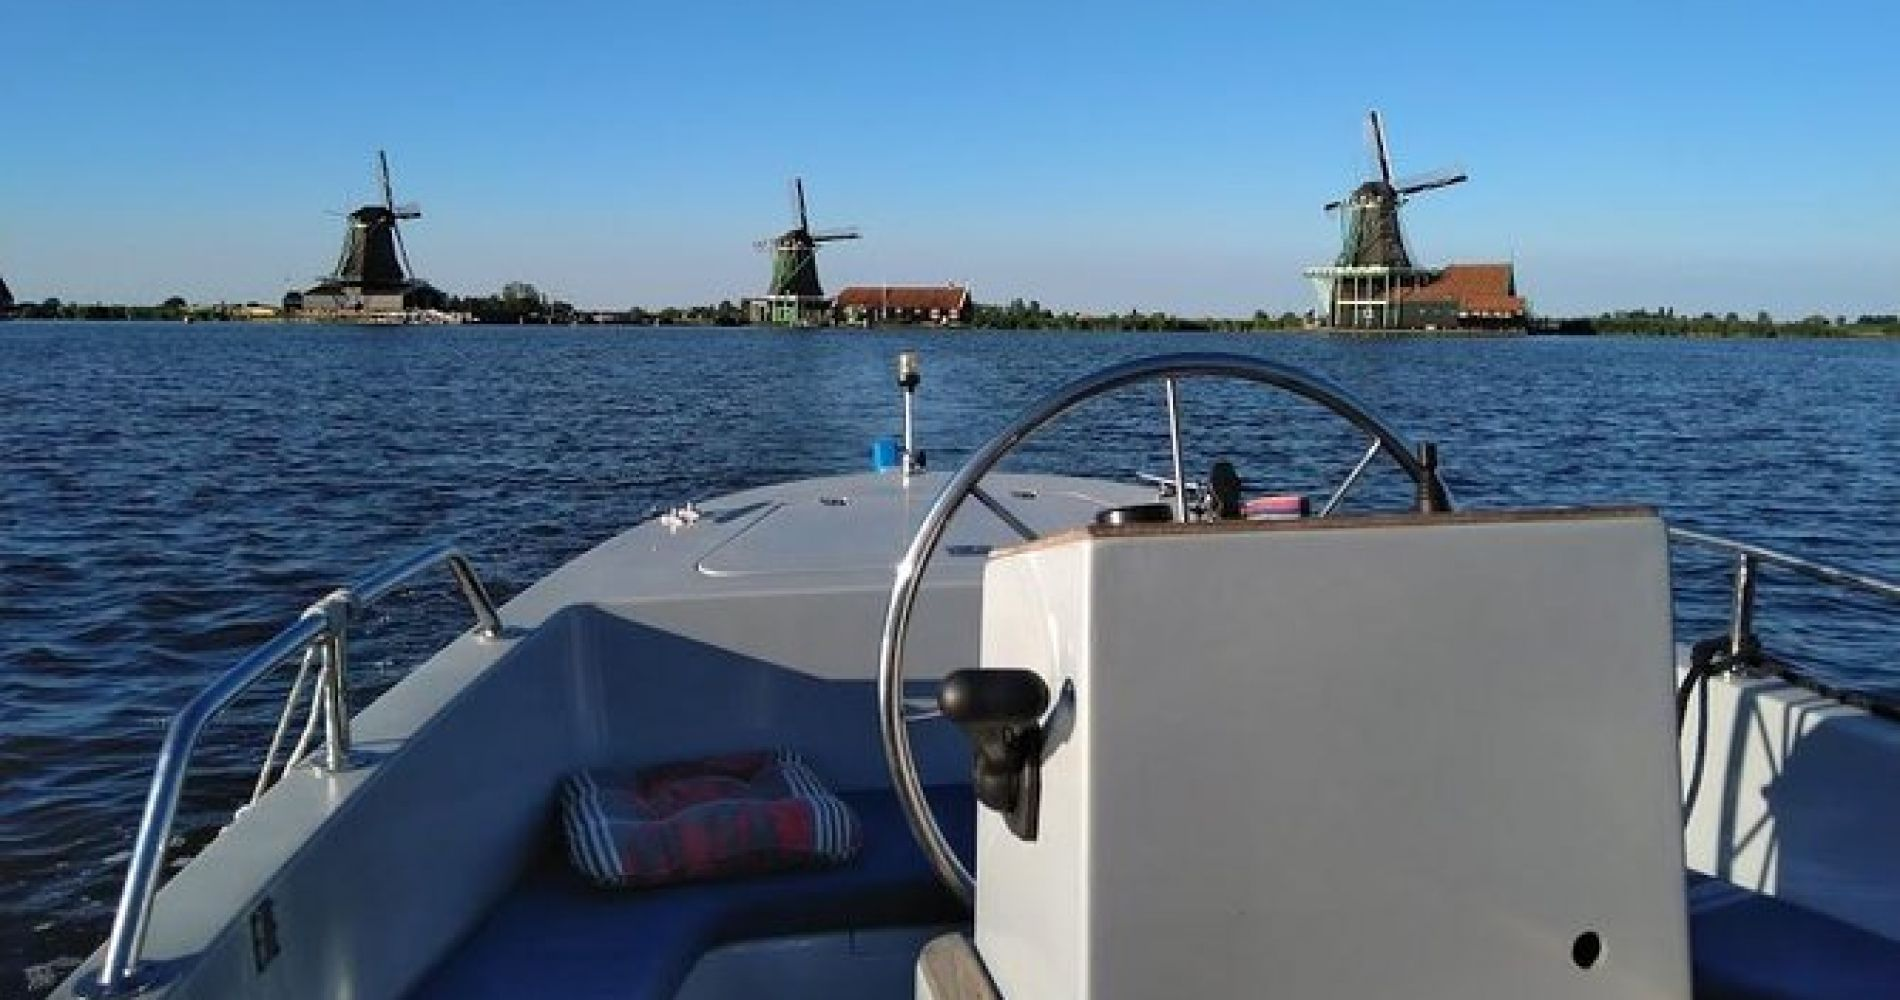 Zaan River Cruise from Amsterdam with 3-Course Meal in Zaandam